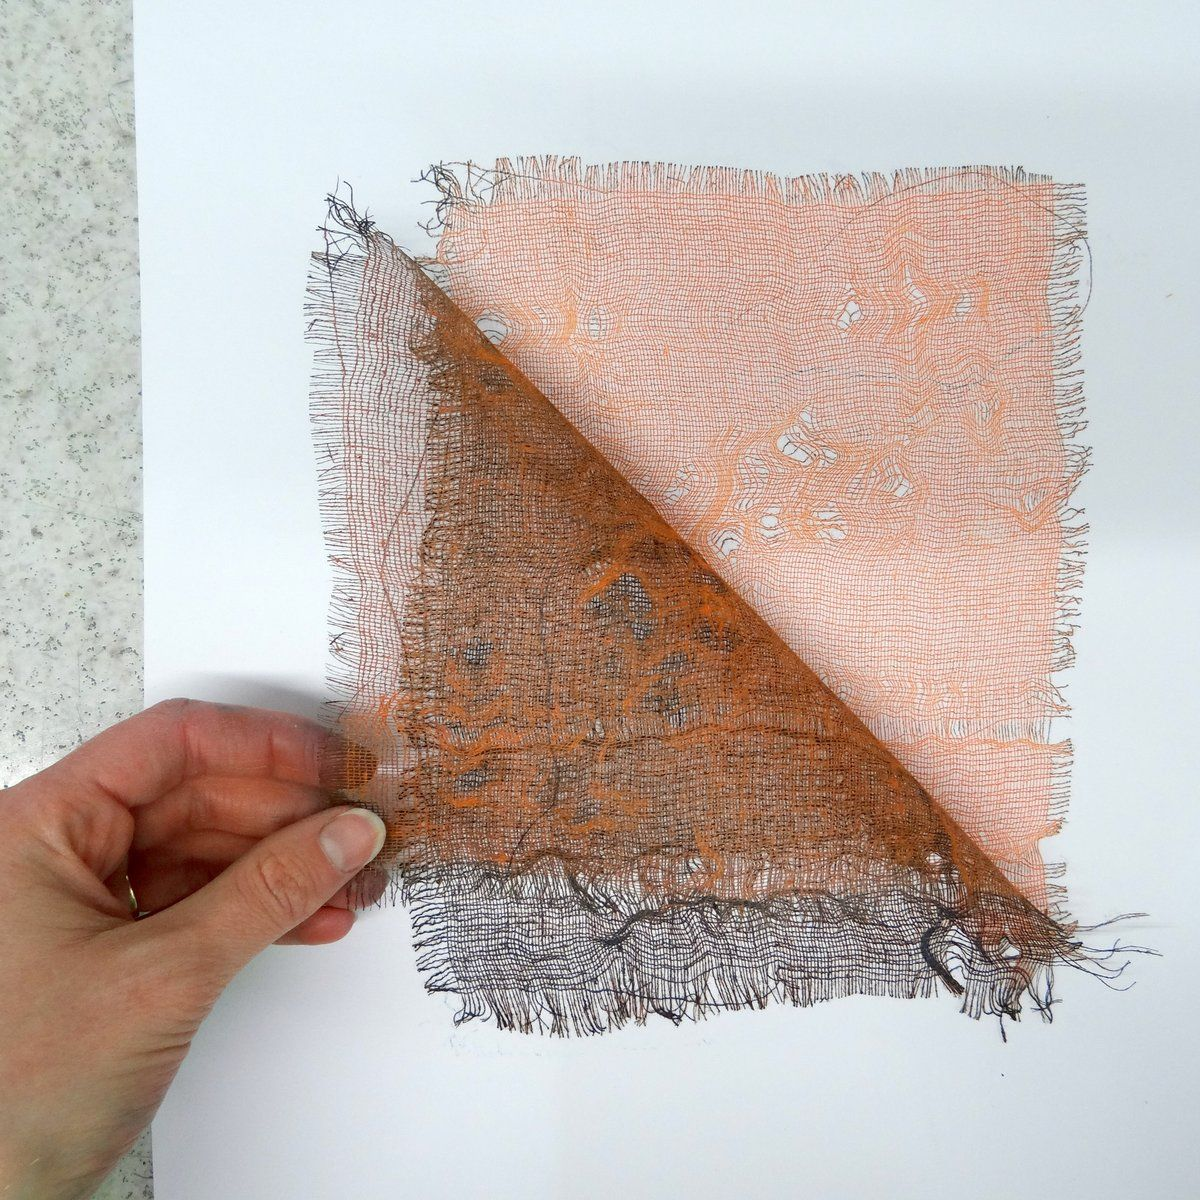 Monoprinting is a lovely technique that allows printmakers to be spontaneous, painterly and experimental. This simple monoprint project produces beautiful delicate prints using a piece of scrim and an etching press. Begin with a piece of perpex, a plastic inking plate or a sheet of drypoint plastic. use masking tape t